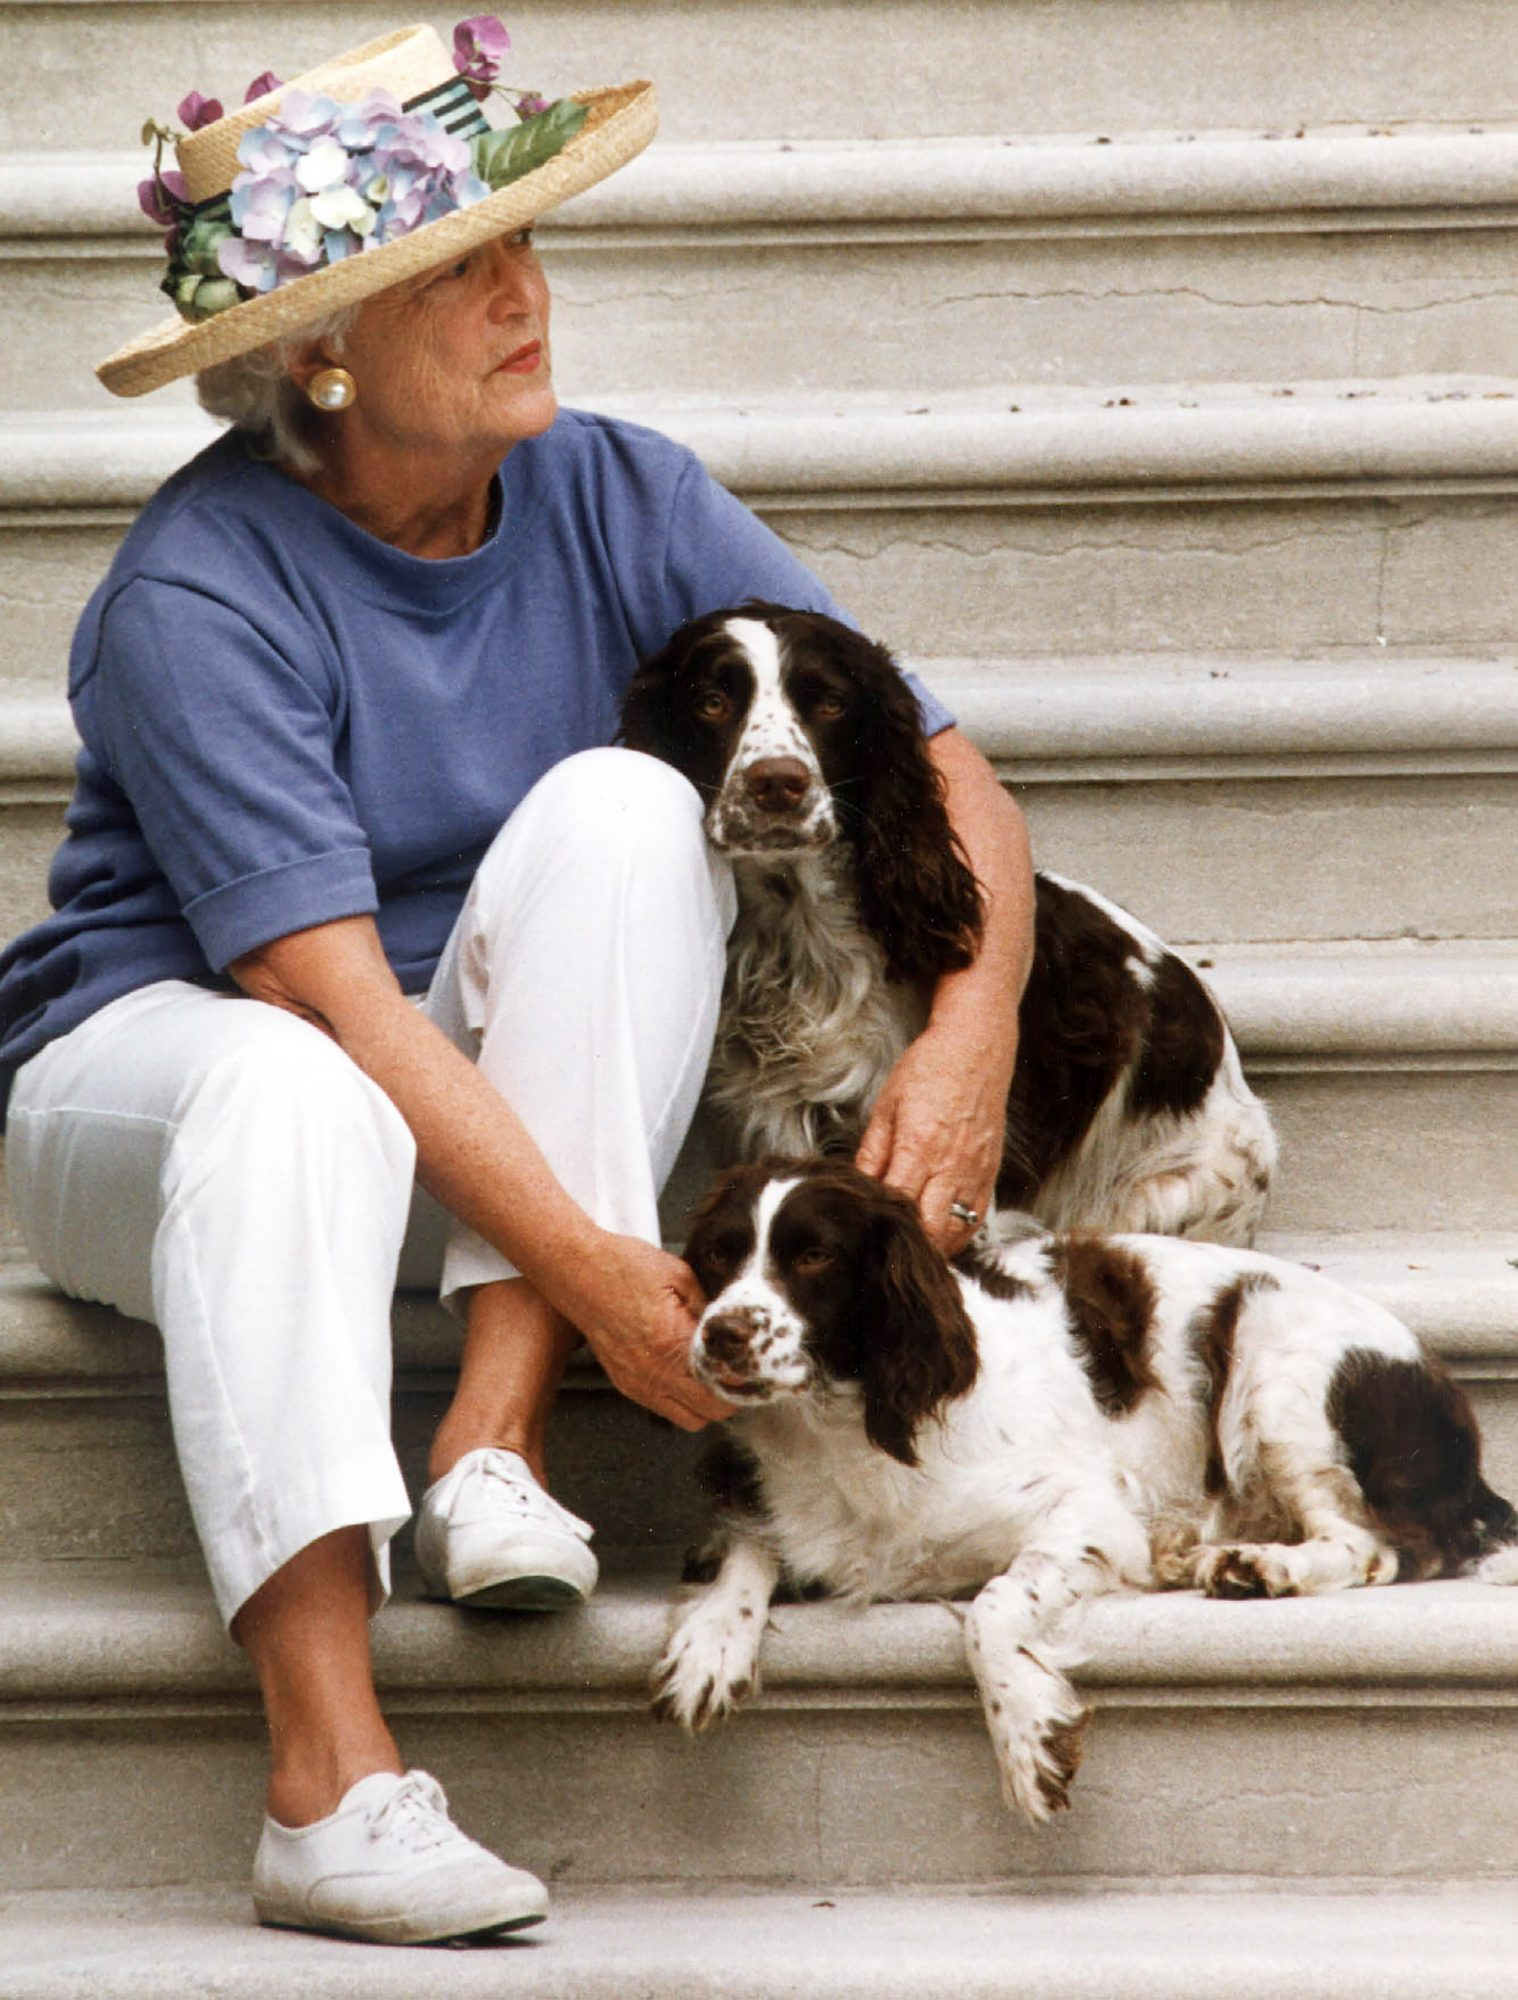 This Recently Unearthed Photo of Barbara Bush and Her Dogs in Matching Outfits Is Beloved by Twitter barbara-bush-31